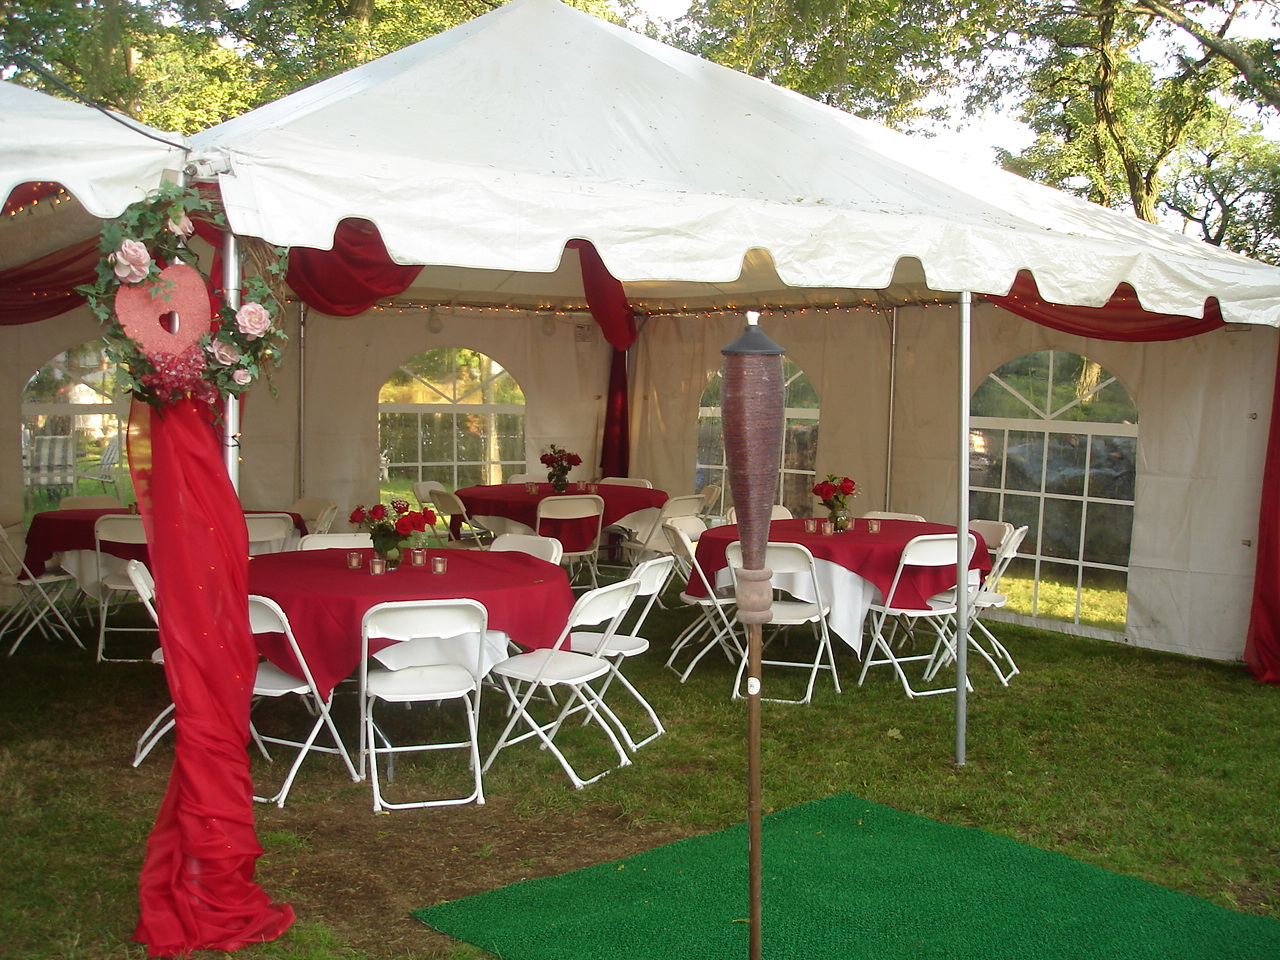 30u0027X 30u0027 & Party Tent Rental and Party Tent Service of Nassau and Western ...